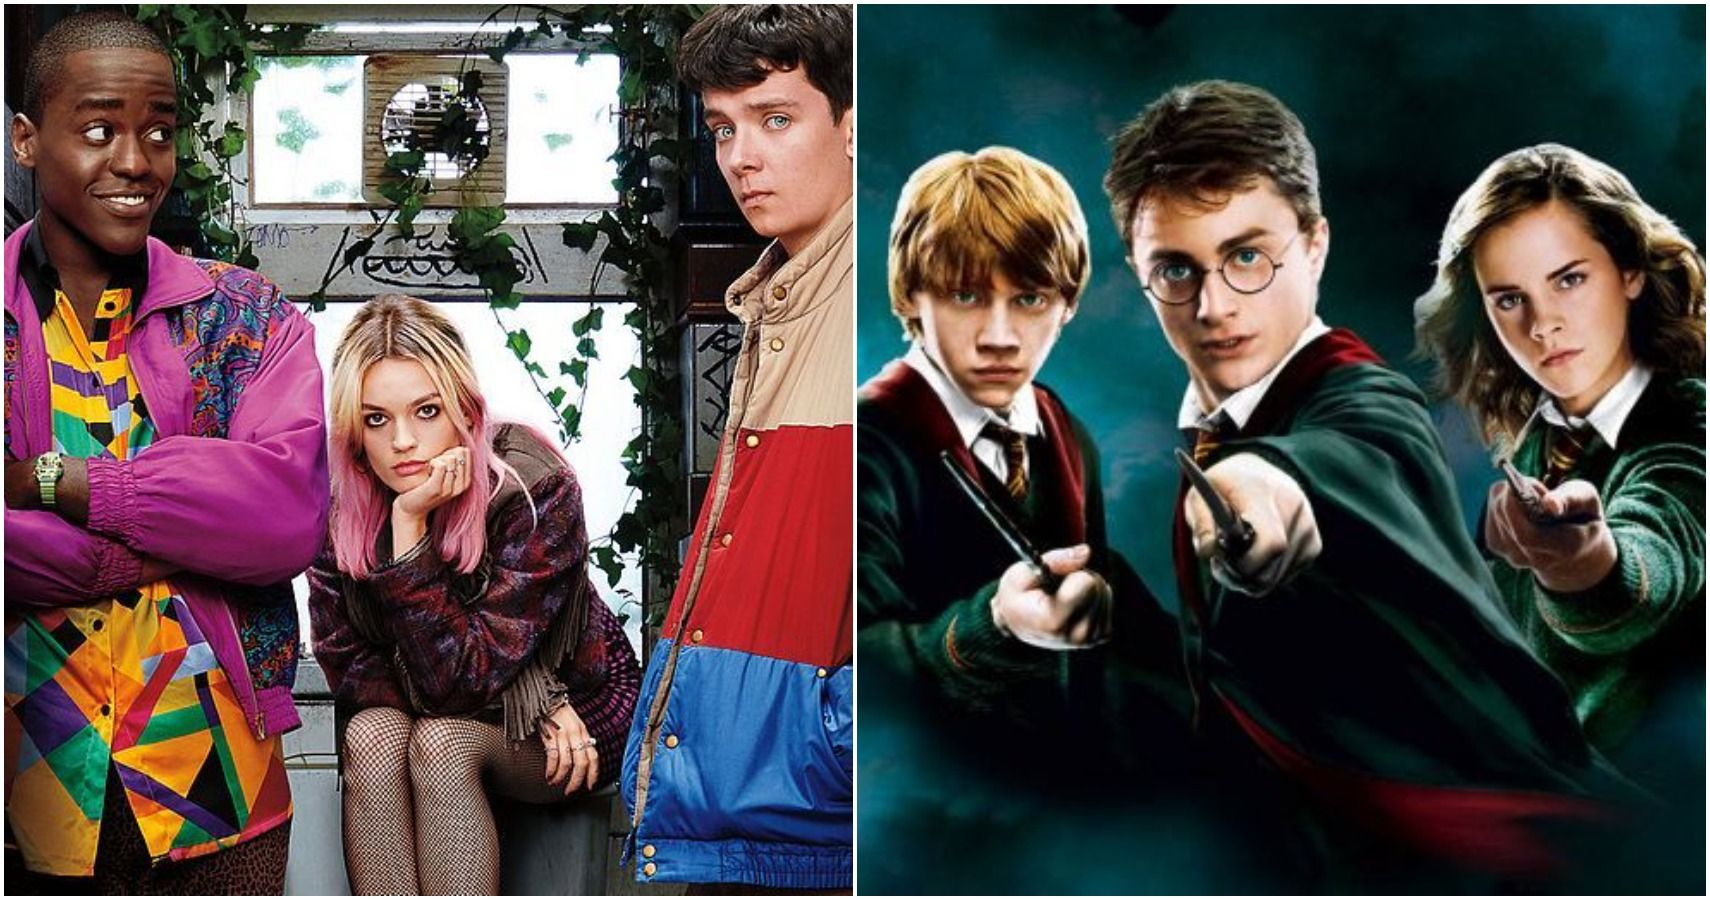 Sex Education Characters & Their Harry Potter Counterparts